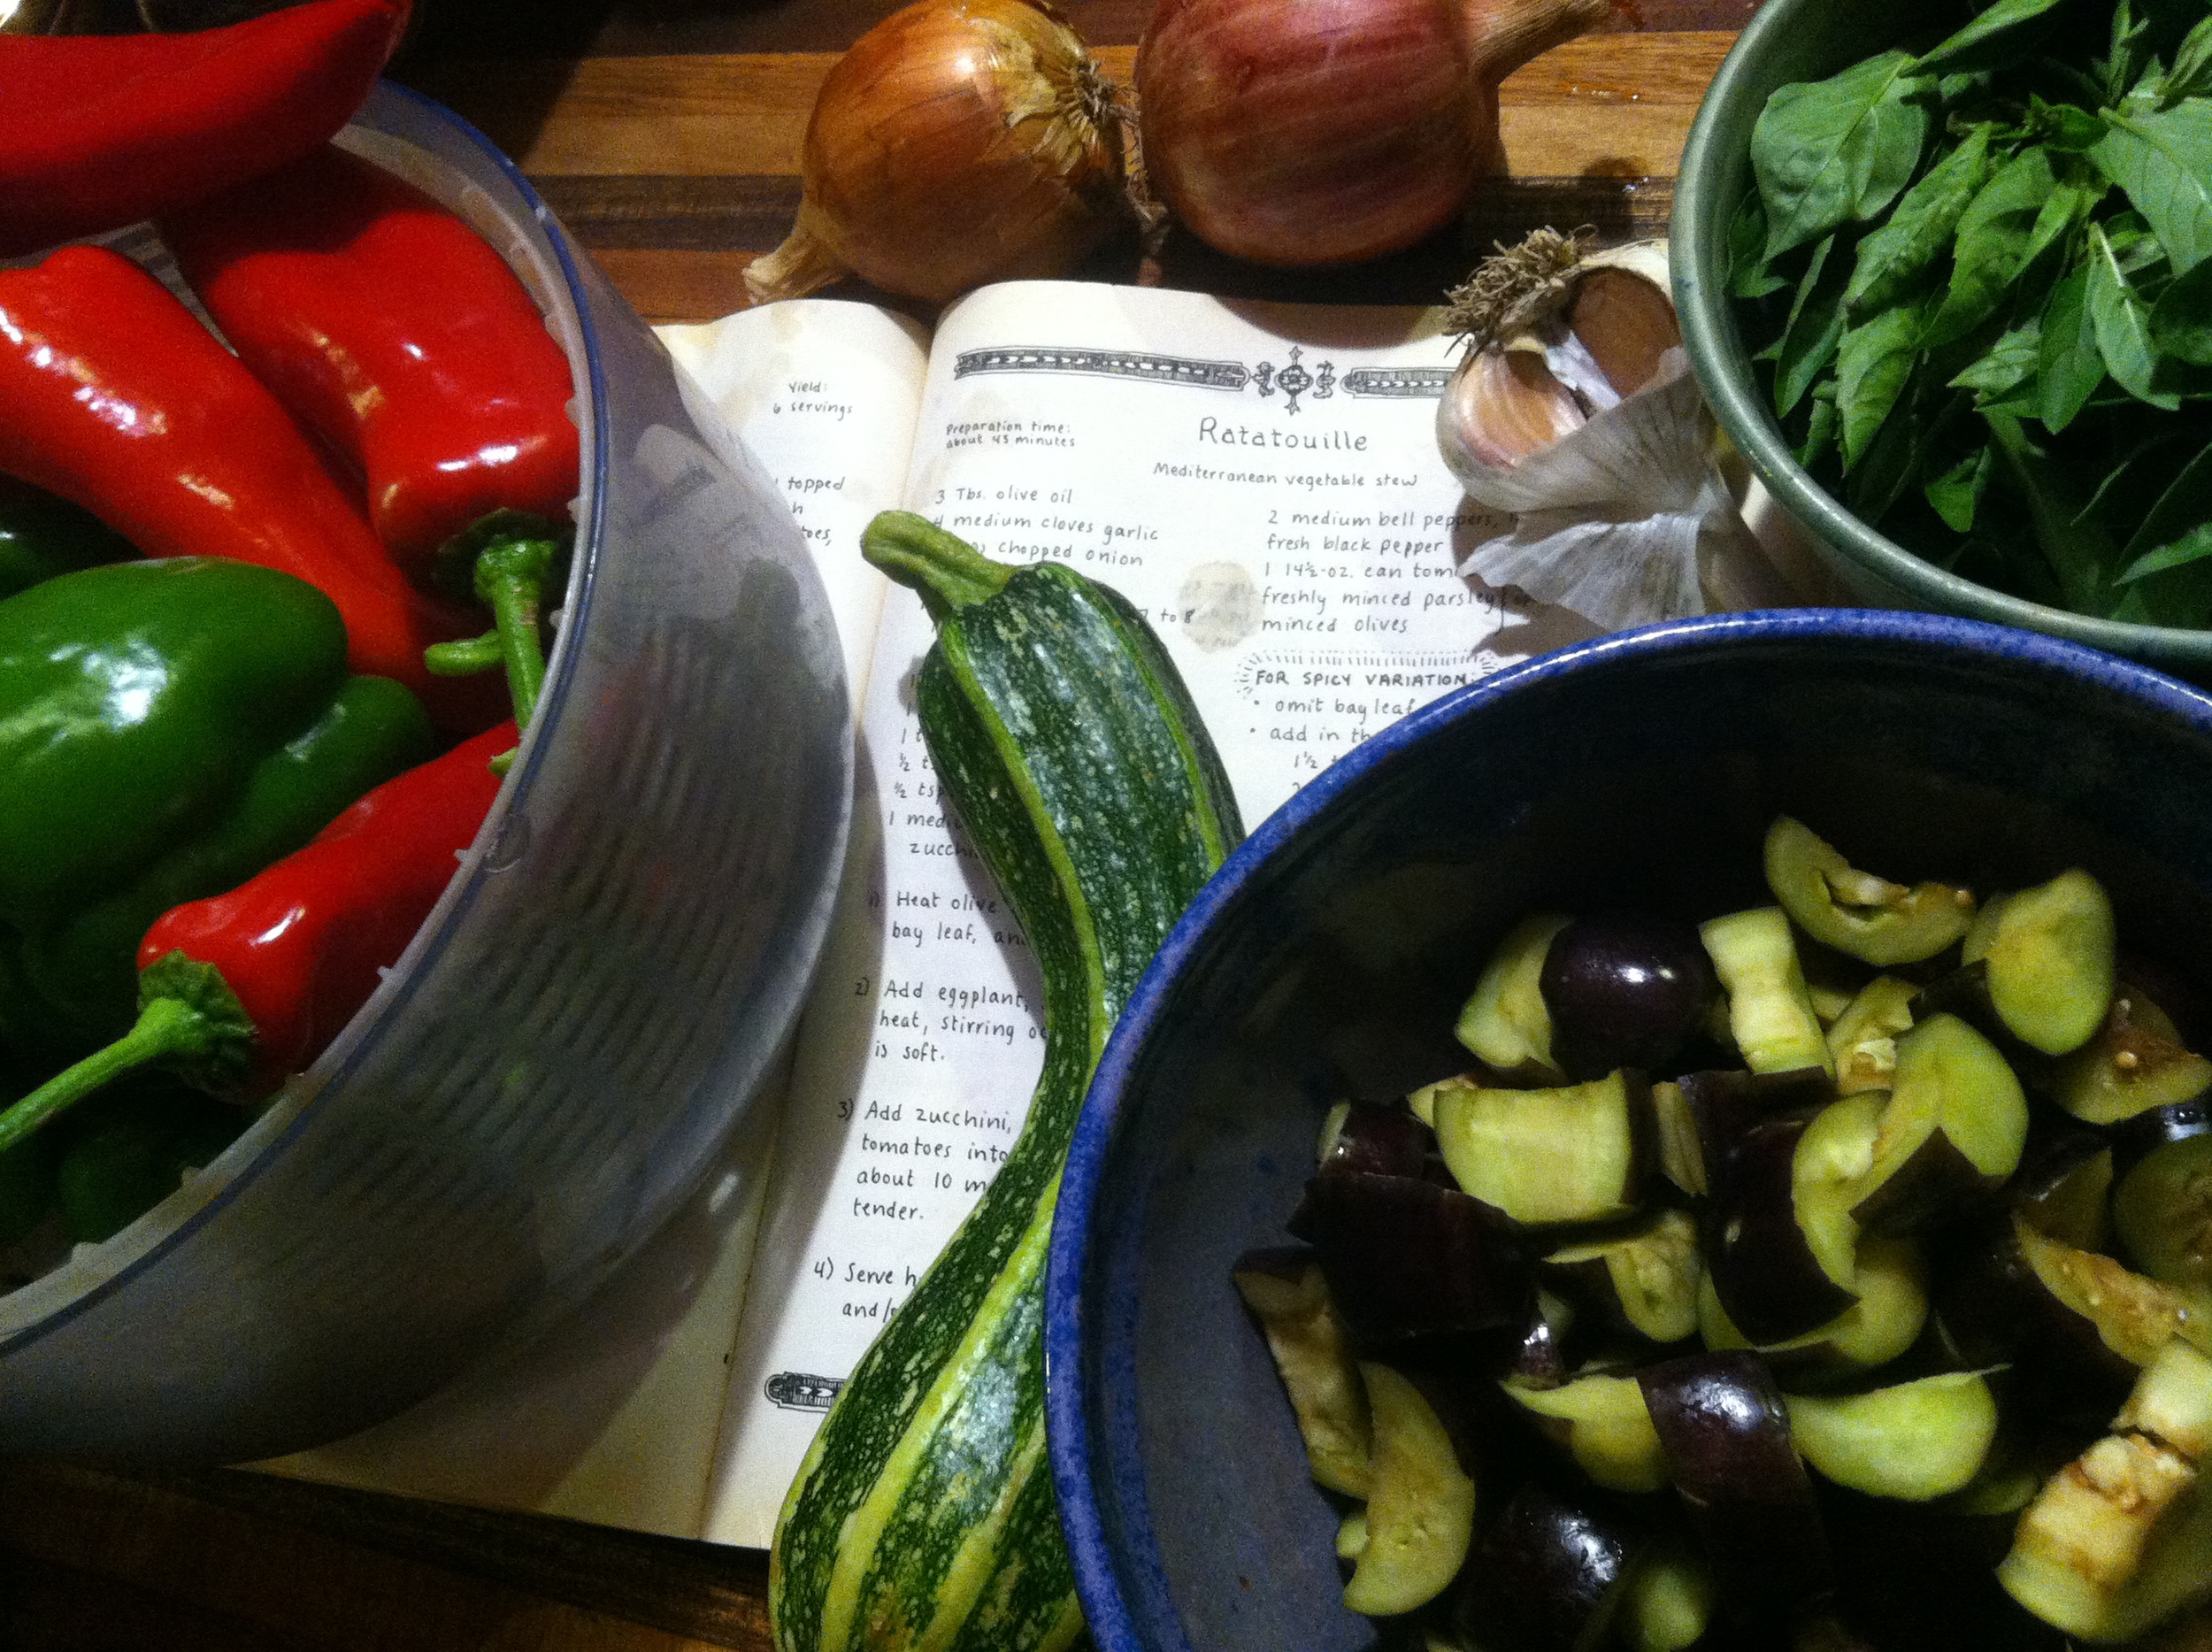 I use the recipe from Moosewood cookbook, choosing the spicy version!